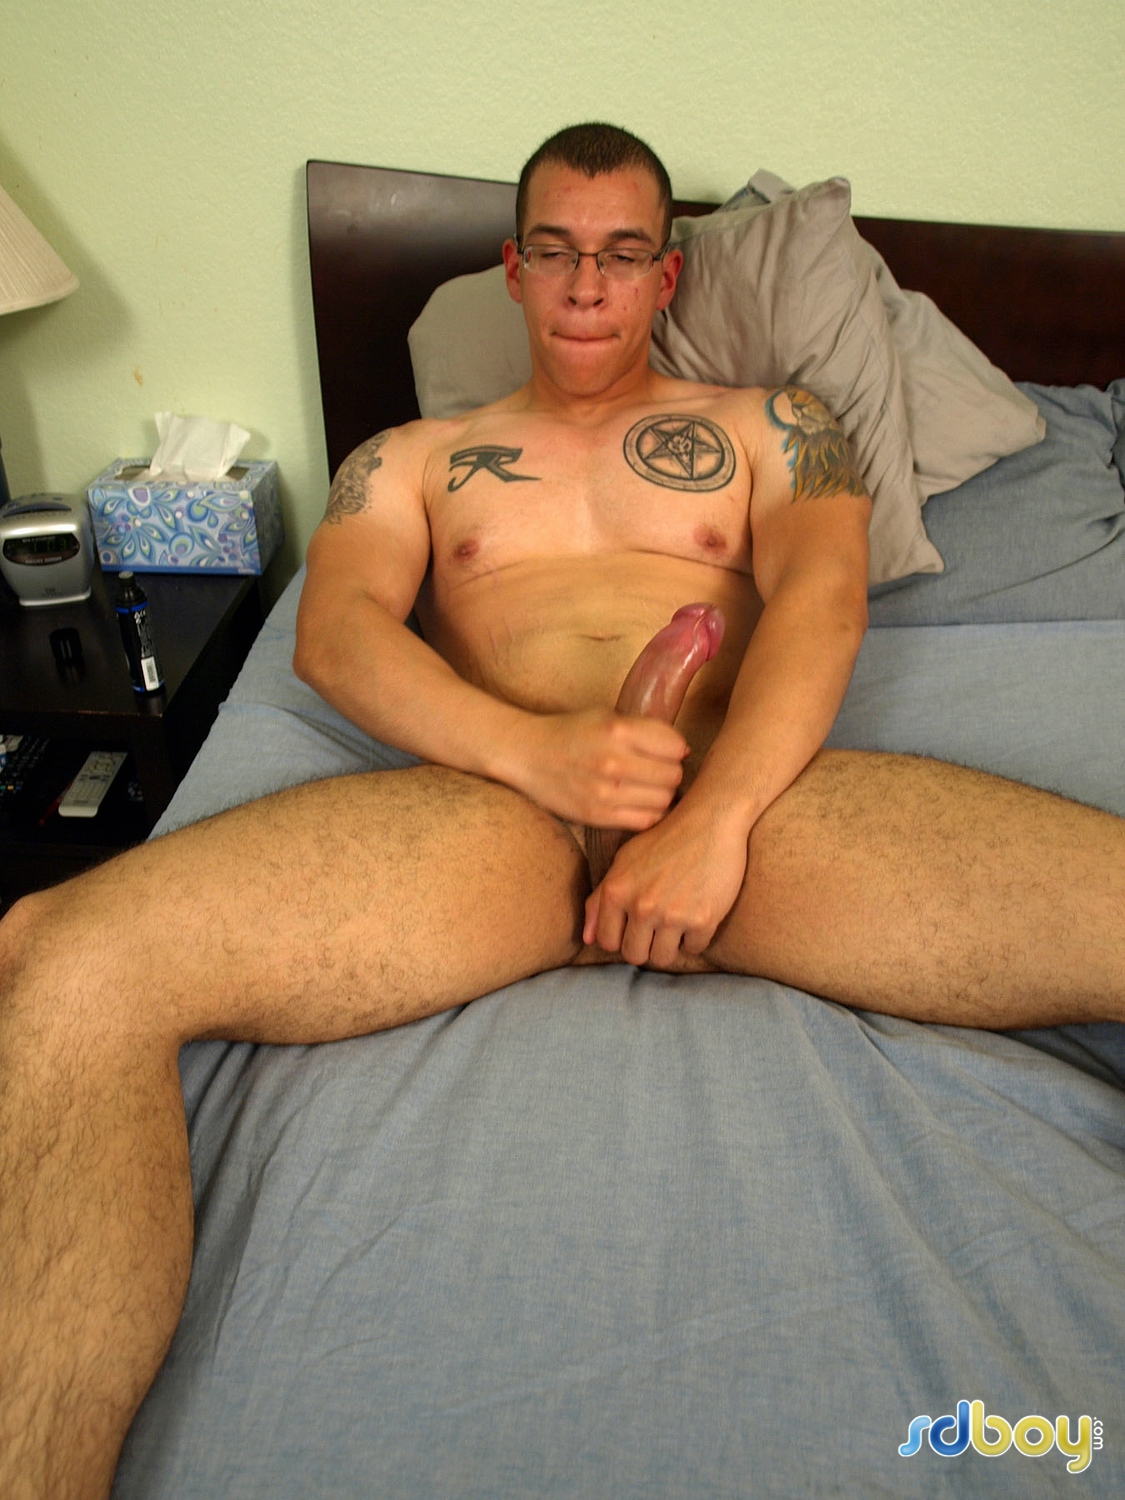 SD-Boy-Ray-Sosa-Big-Uncut-Cock-Latino-Marine-Masturbating-Amateur-Gay-Porn-09 Amateur Gay Latino Marine Shows His Tatts and Jerks His Uncut Cock